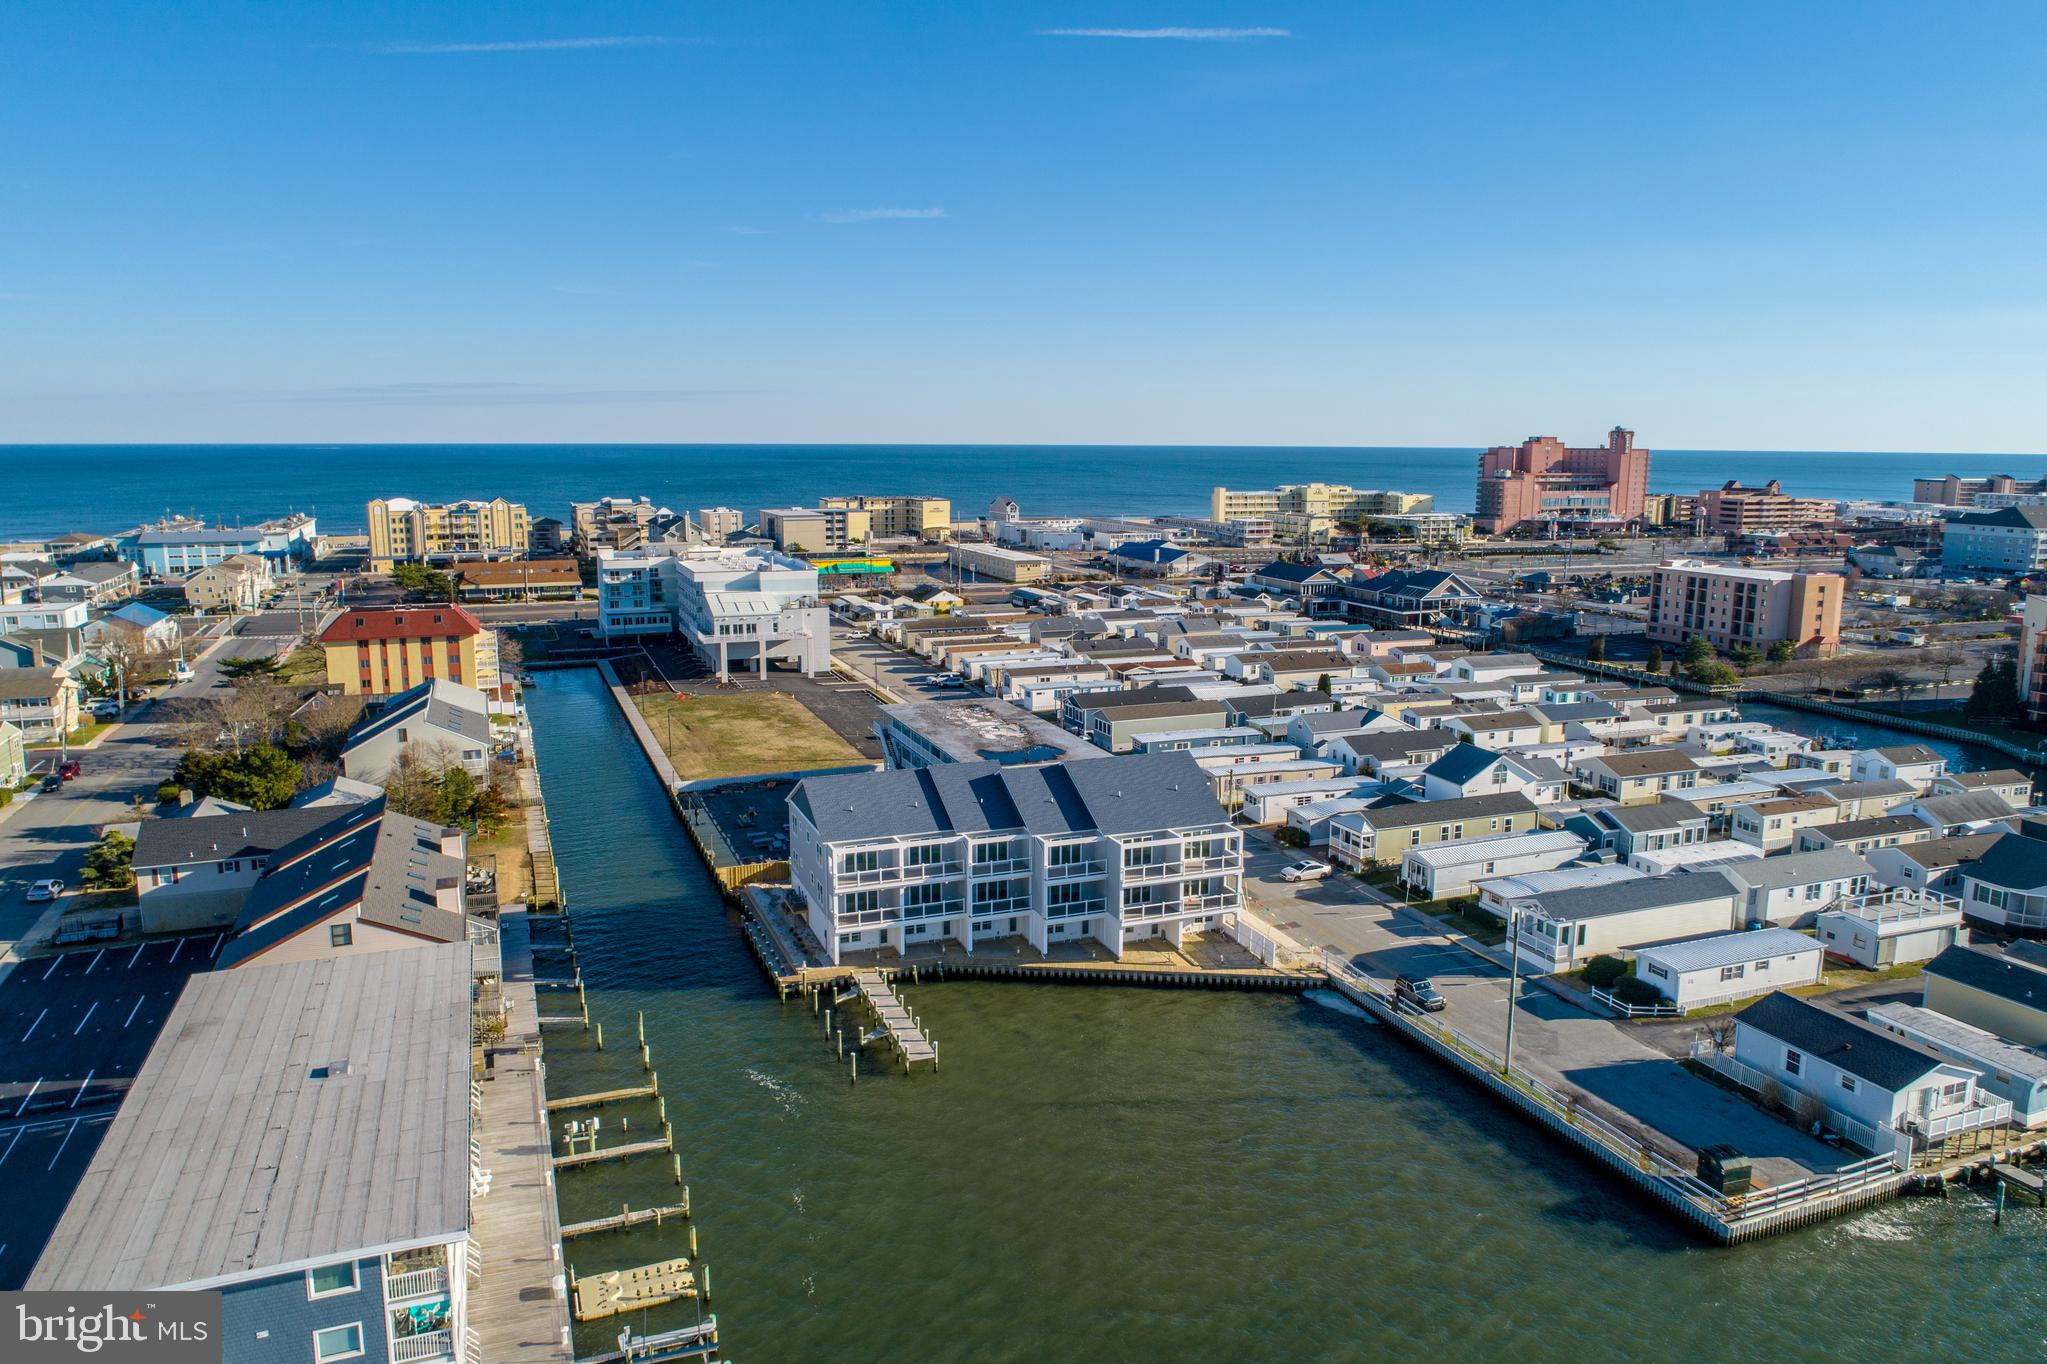 Absolutely Stunning brand new construction on DIRECT BAYFRONT with over 200' of waterfrontage with new 50yr Vinyl Bulkhead.  One of the last locations with views and water access left in Ocean City.  Excellent Construction by long-time local builder with high end finishes - Hardwood  and Custom Tile floors and Architectural Doors throughout plus Gas Rannai Tankless Water Heater.  Kitchen has quartz counters, glass tile backsplash, stainless steel appliances and upgraded fixtures with large pantry.  Living Room offers stunning direct bayfront views with huge balcony.  Bayfront Master Suite with private balcony, gorgeous tile walk-in shower, double sink and dual closets. Huge 2+ Car Garage with large beach/boat storage plus custom built-in entry bench.  Boat Slip with 100' of additional bulkhead for jet skis, kayaking, and guests.    Taxes and Fees are Estimated.